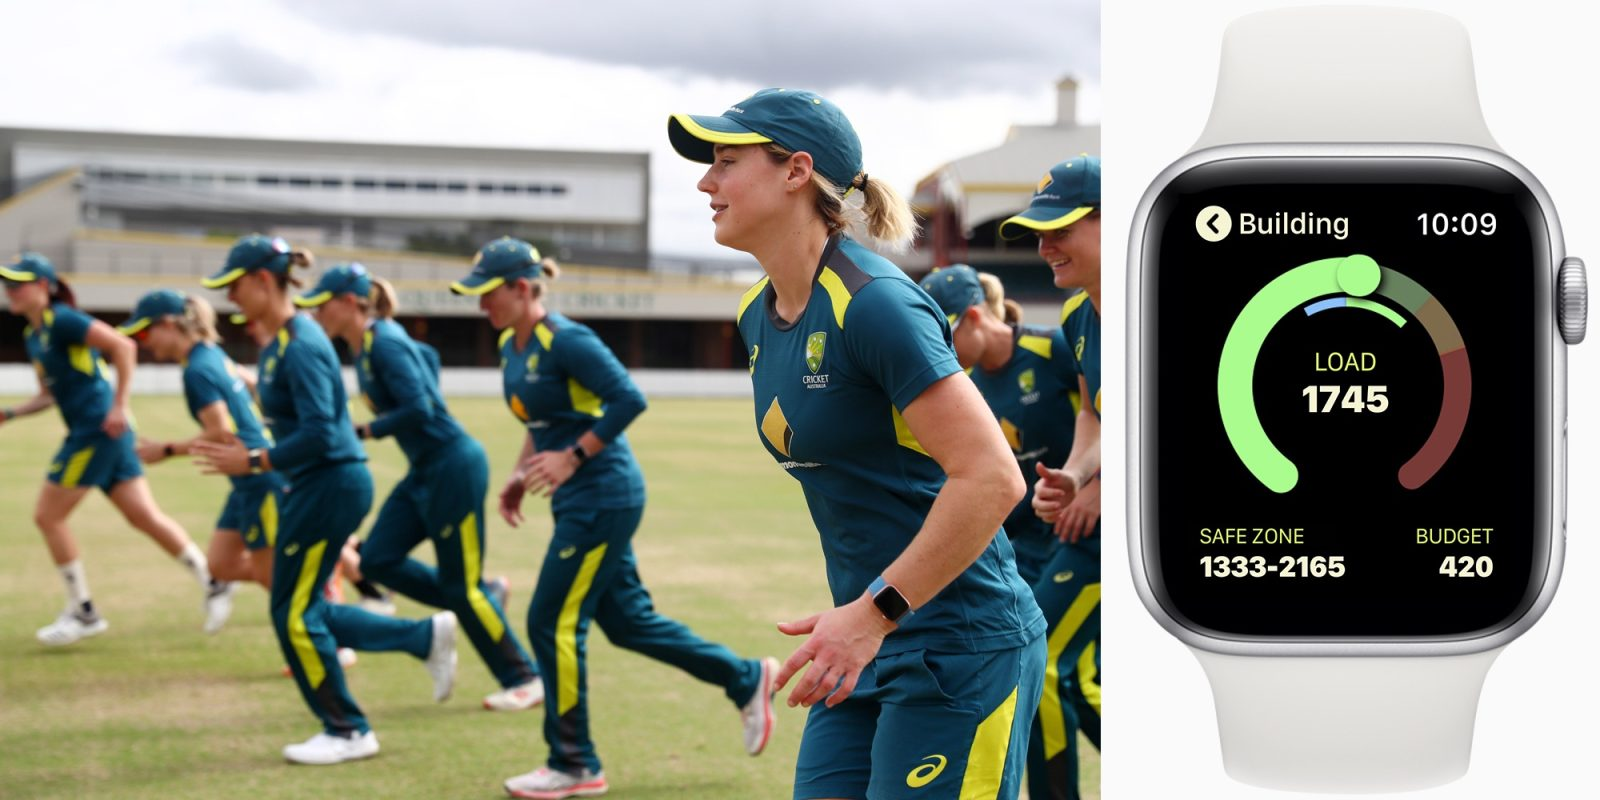 Apple Watch helping Australia's Women's Cricket team optimize training and avoid injury